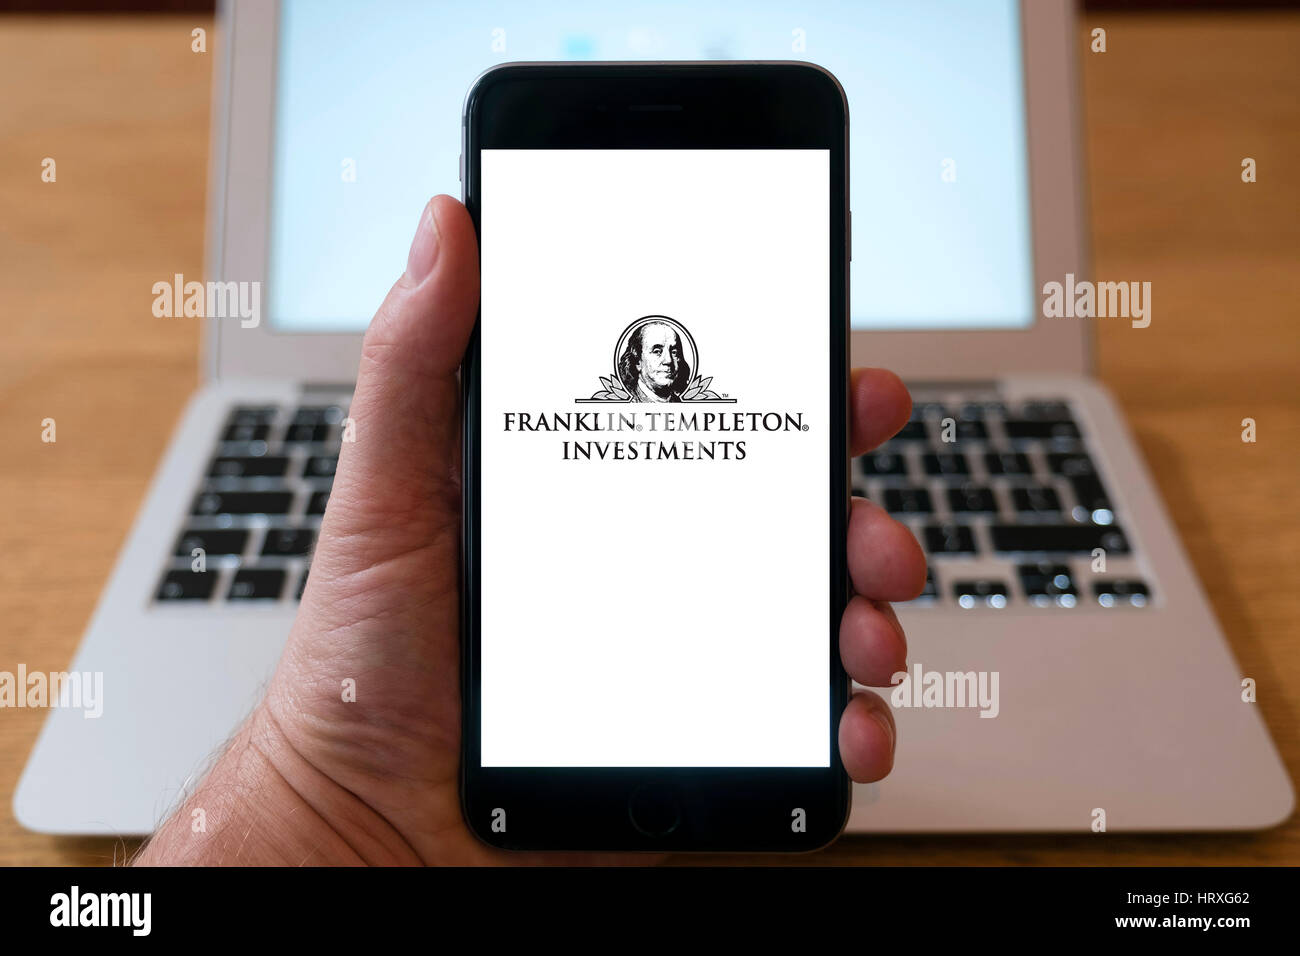 Franklin Templeton Investments fund manager logo on smart phone screen. - Stock Image